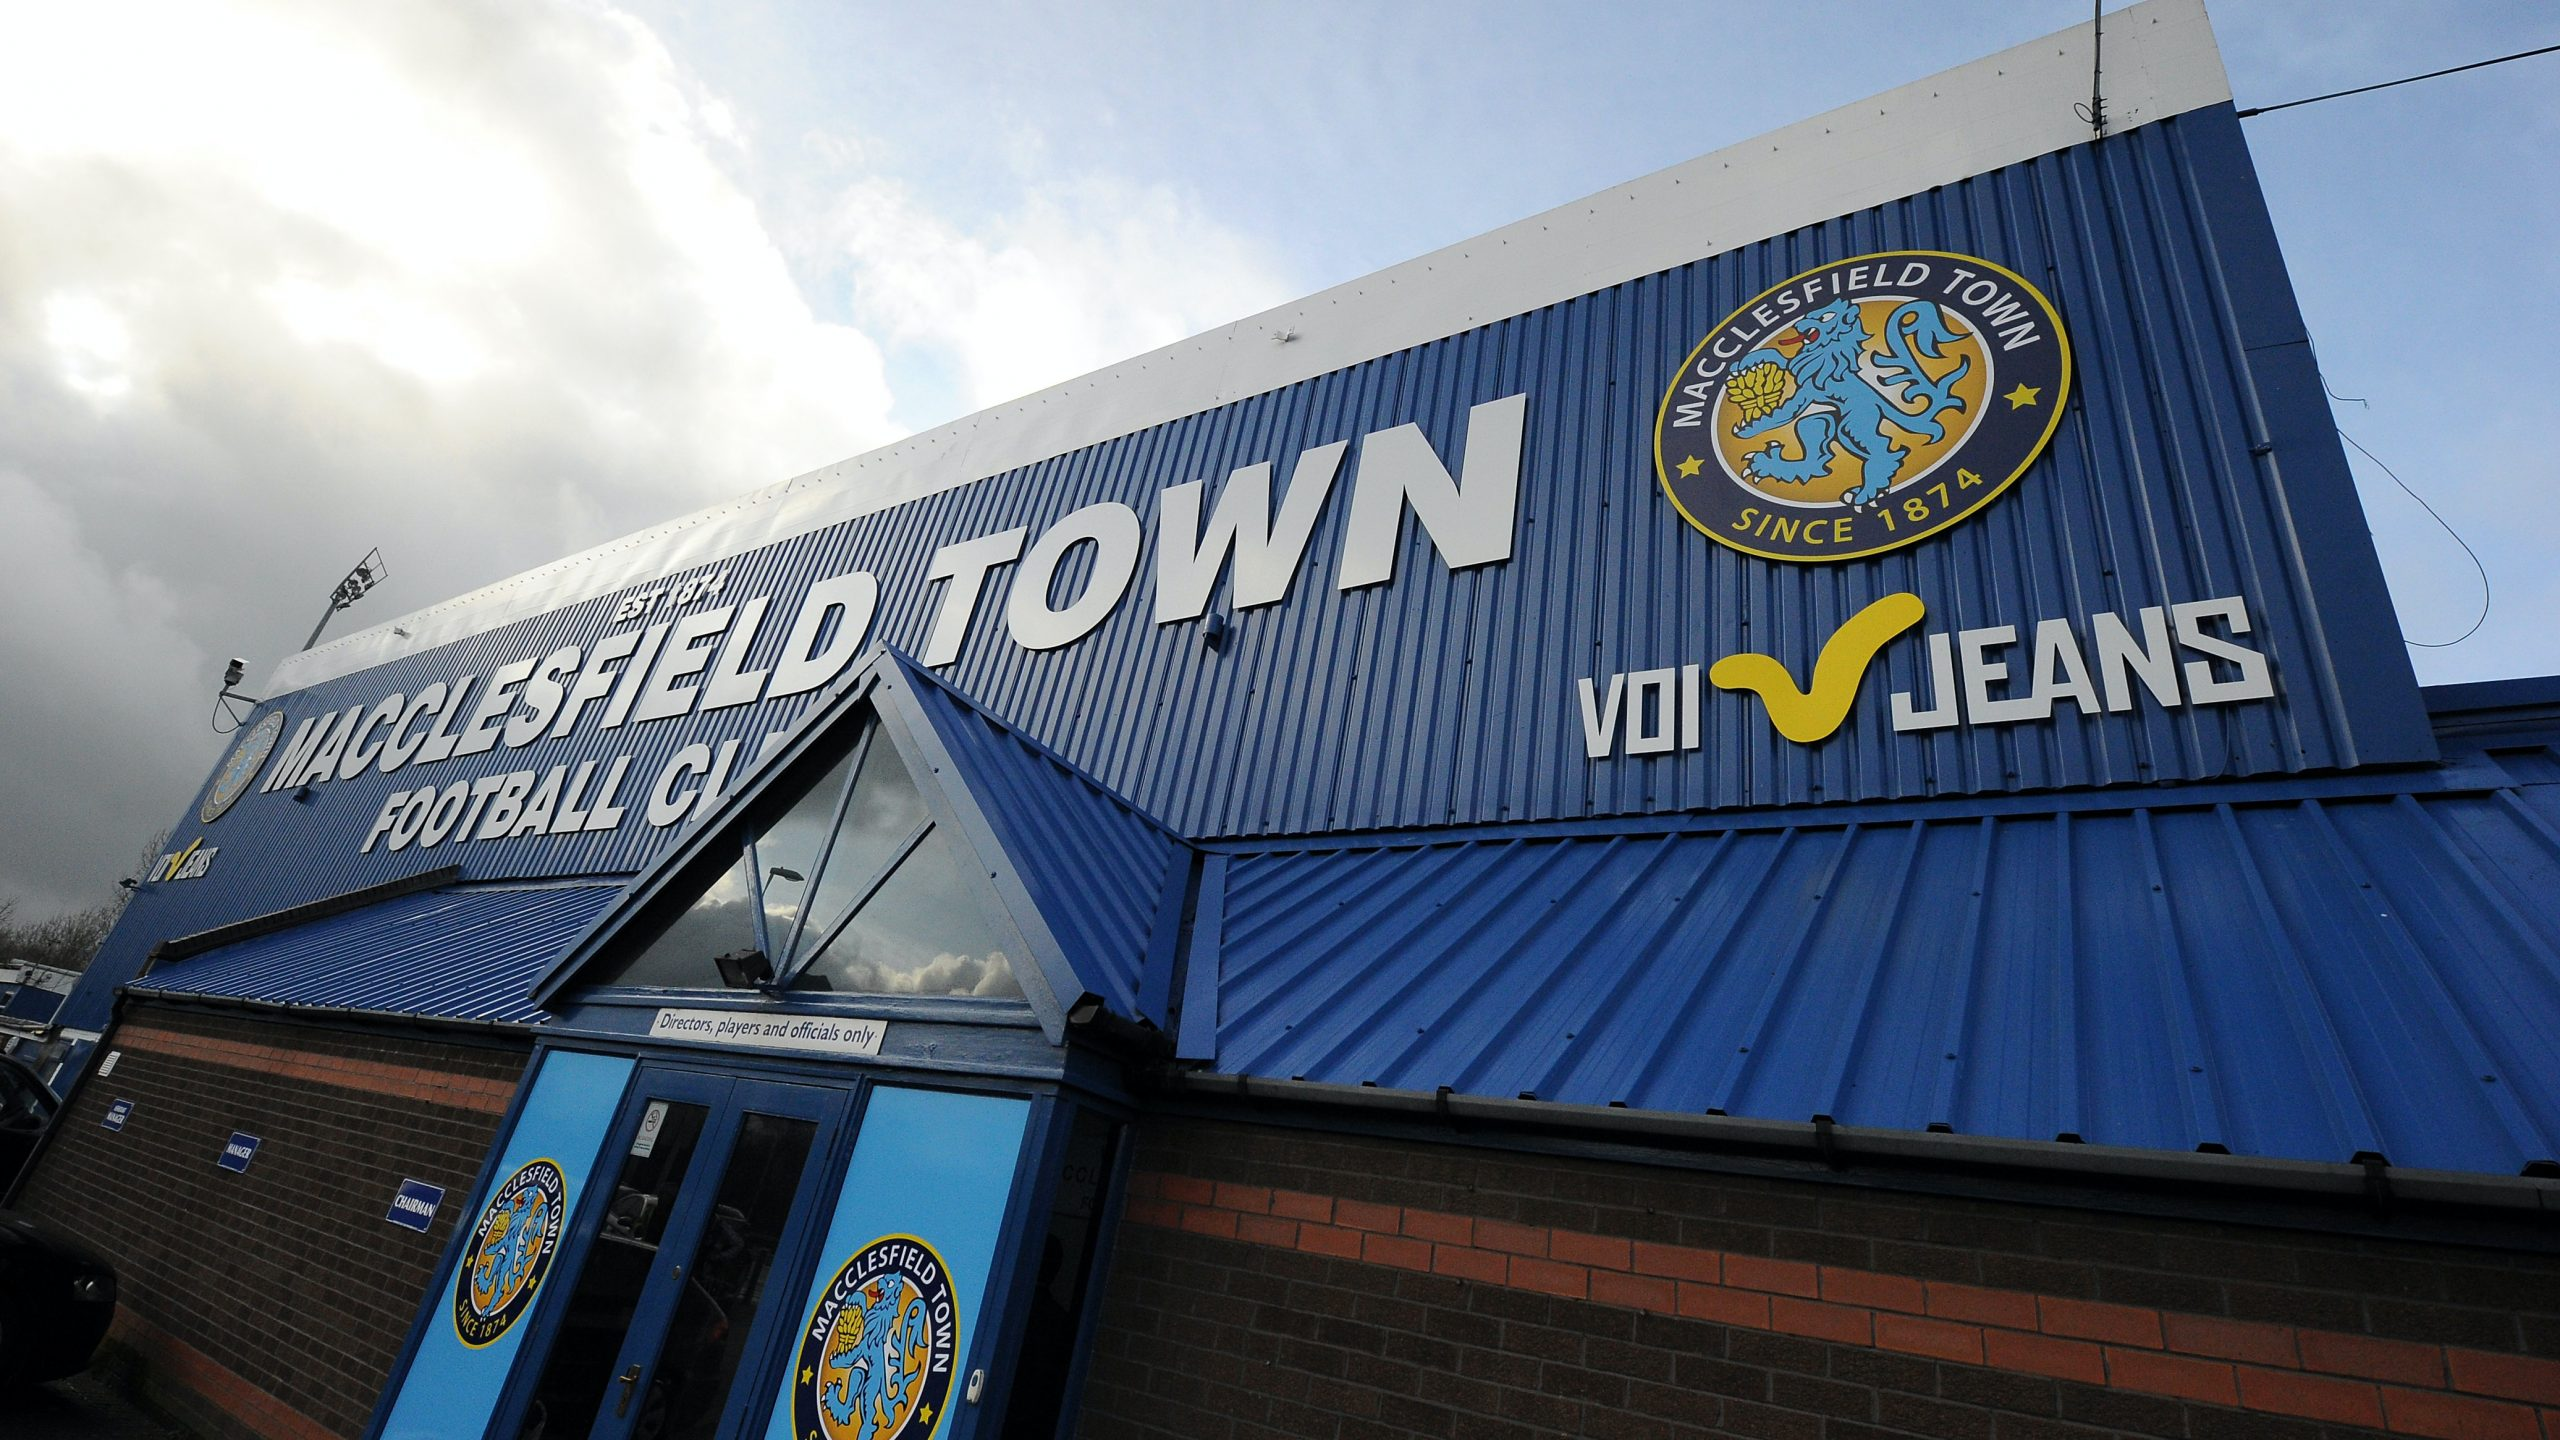 macclesfield town - photo #1